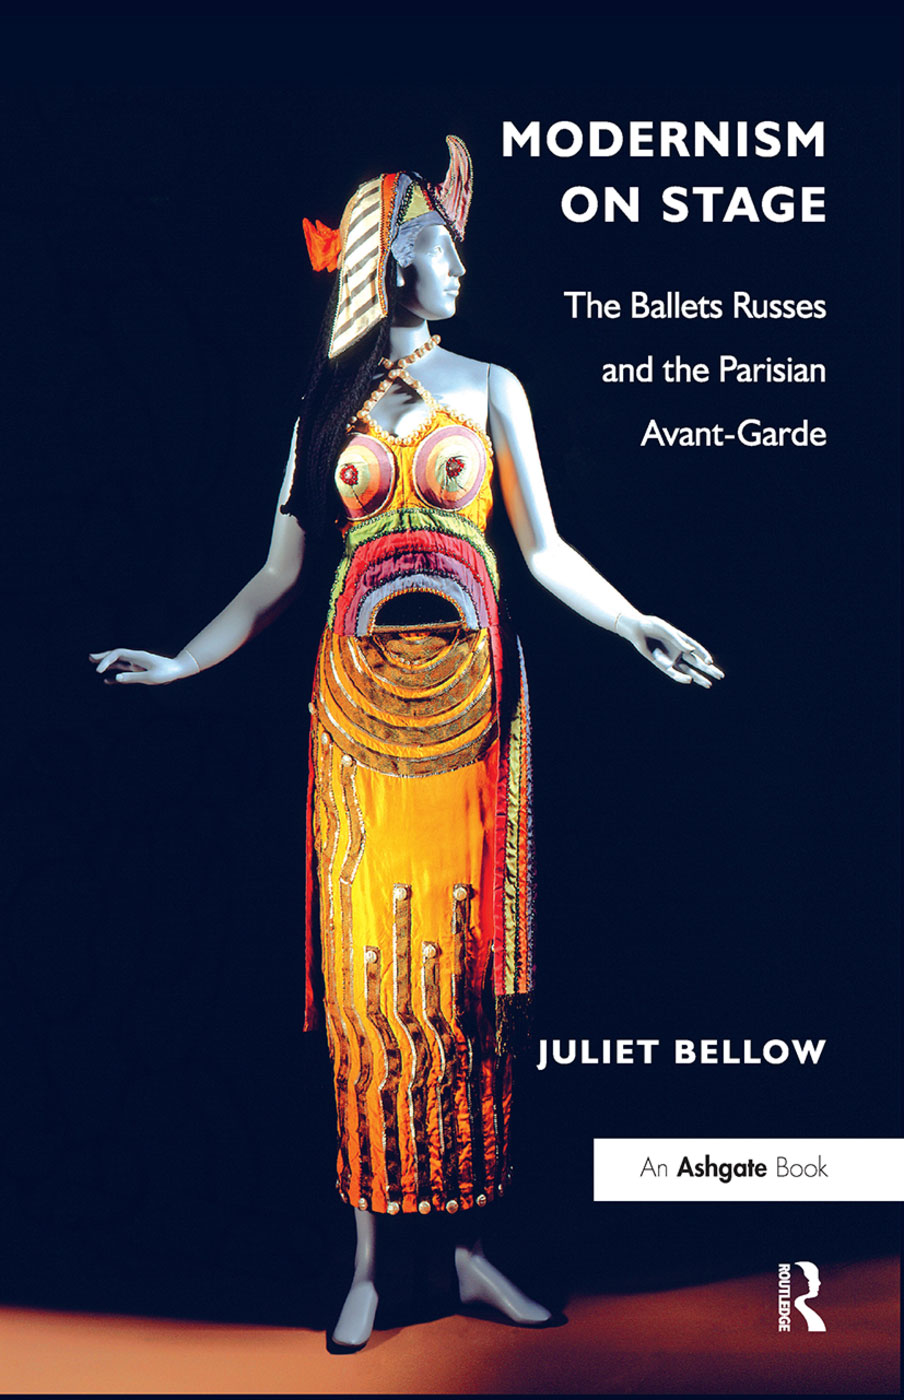 Modernism on Stage: The Ballets Russes and the Parisian Avant-Garde by Juliet Bellow